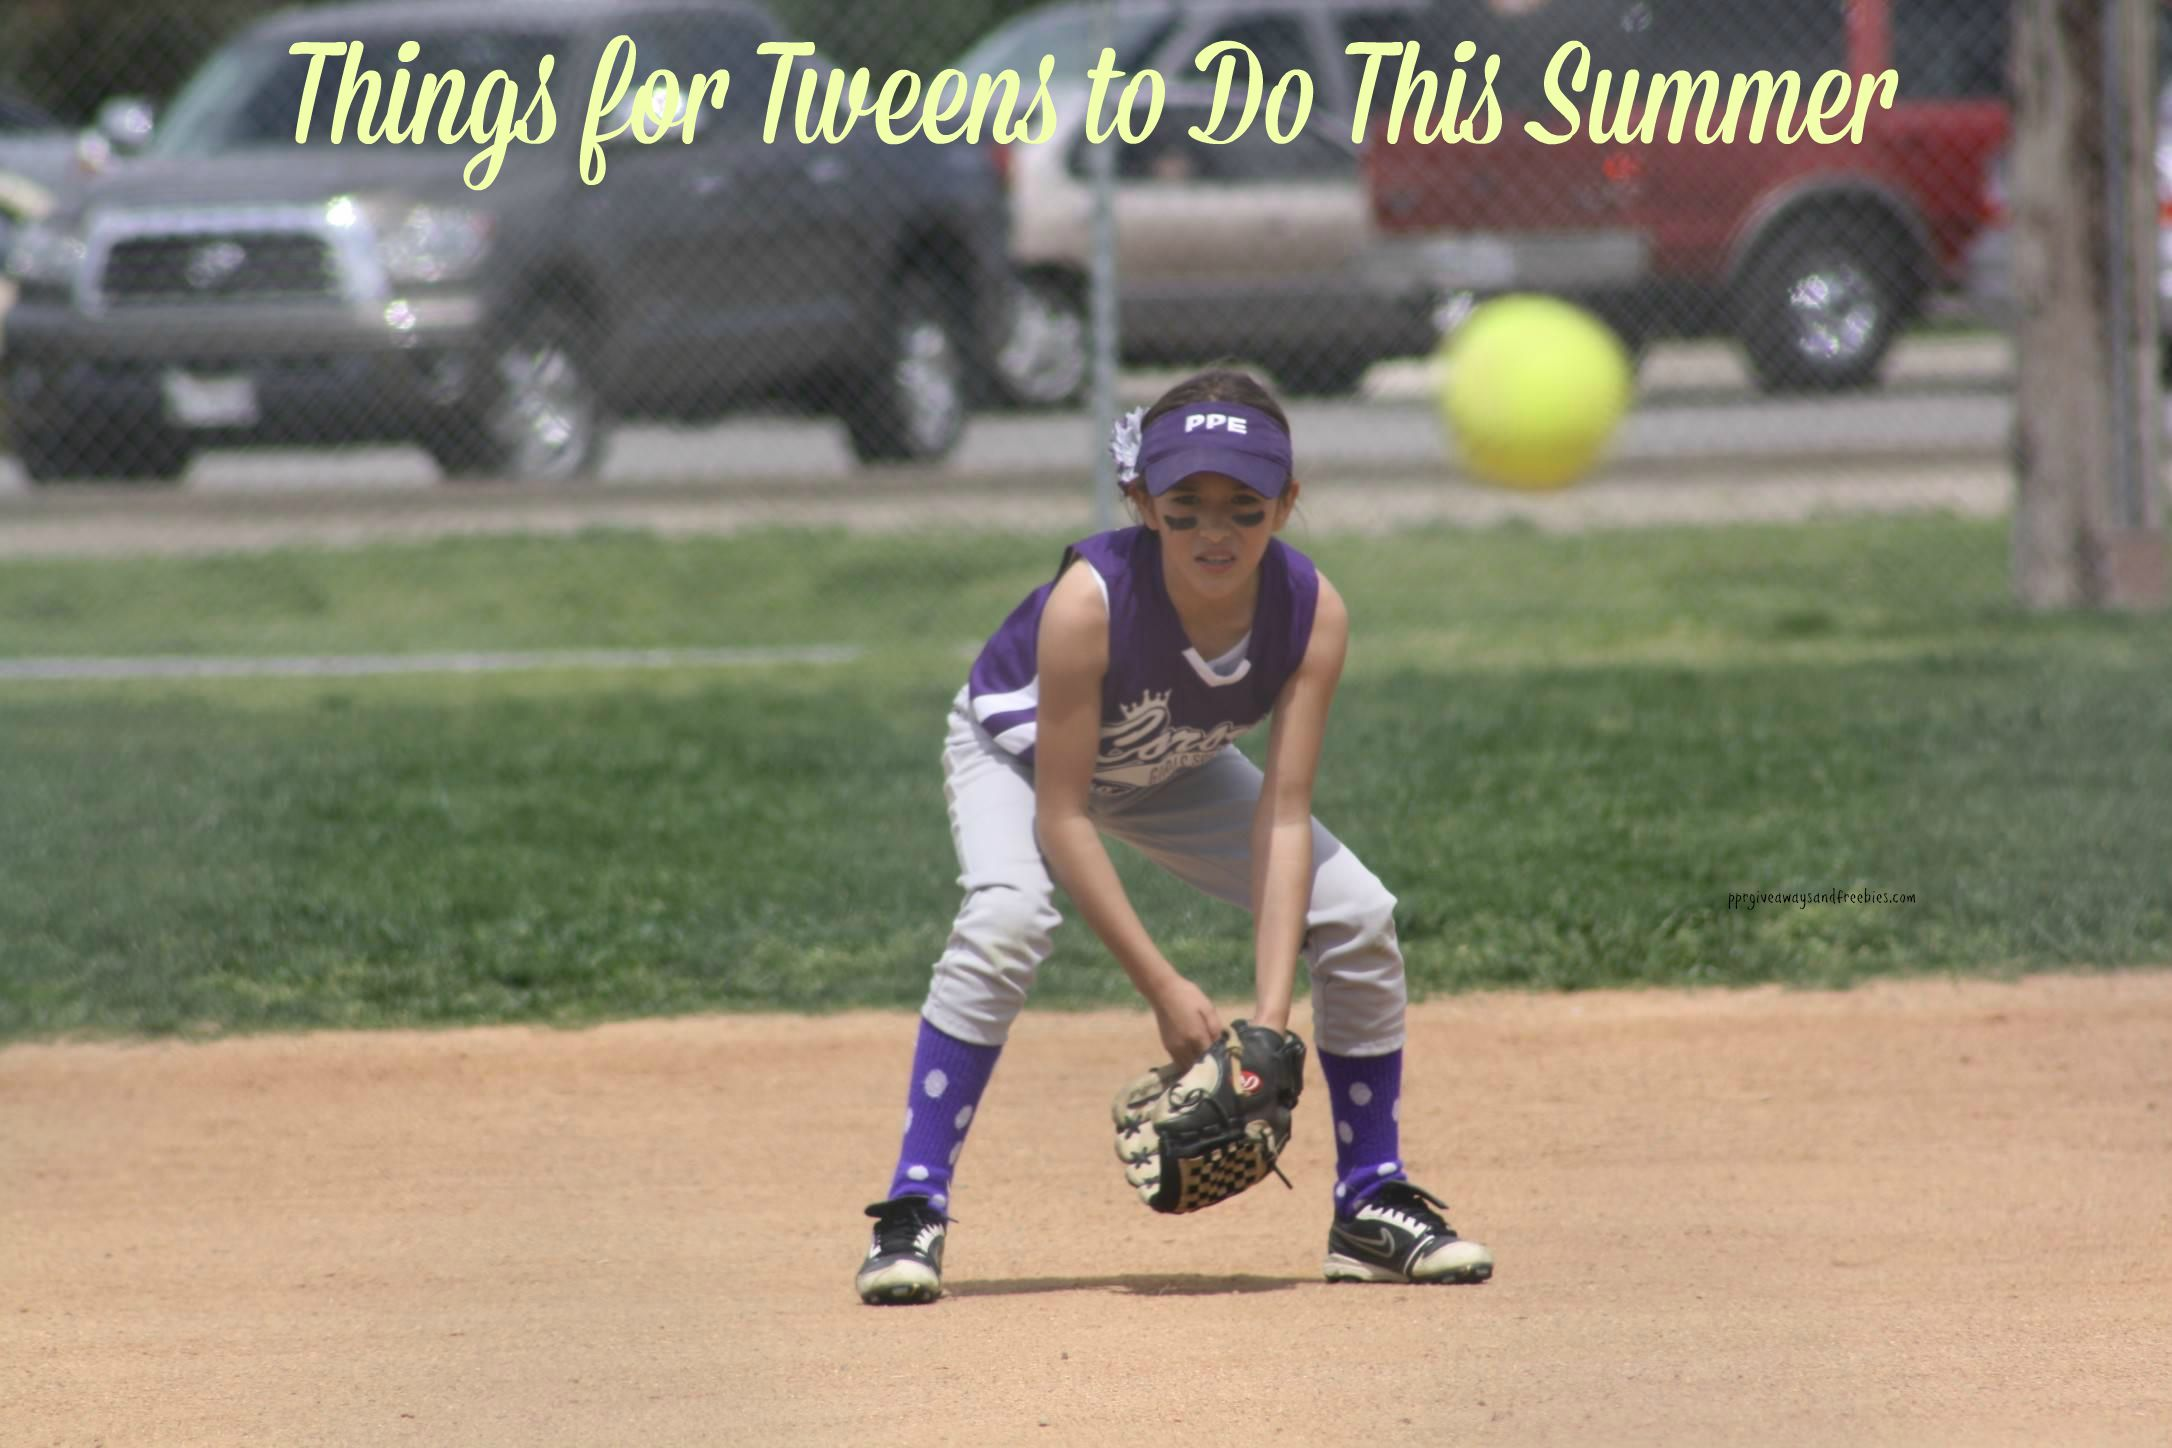 Things for Tweens to Do During the Summer